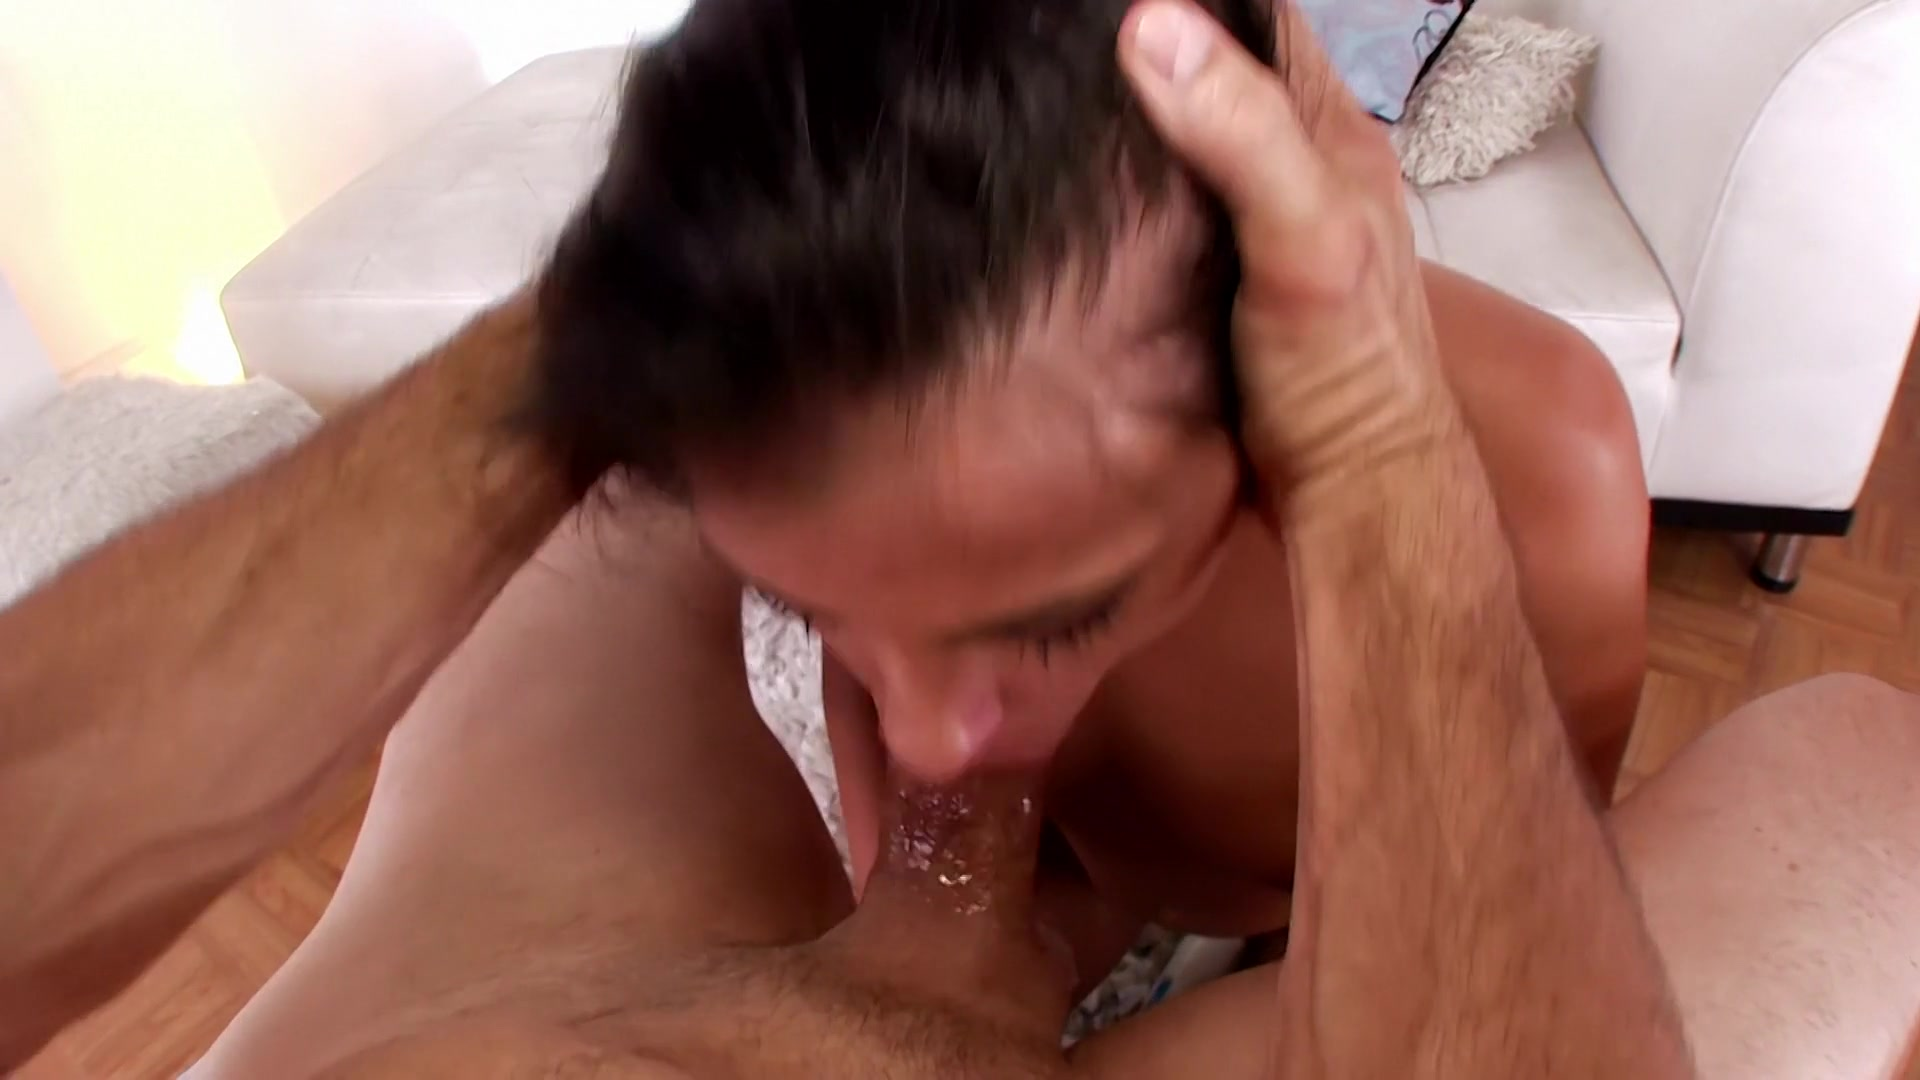 Deep throat blowjob preview trailer video